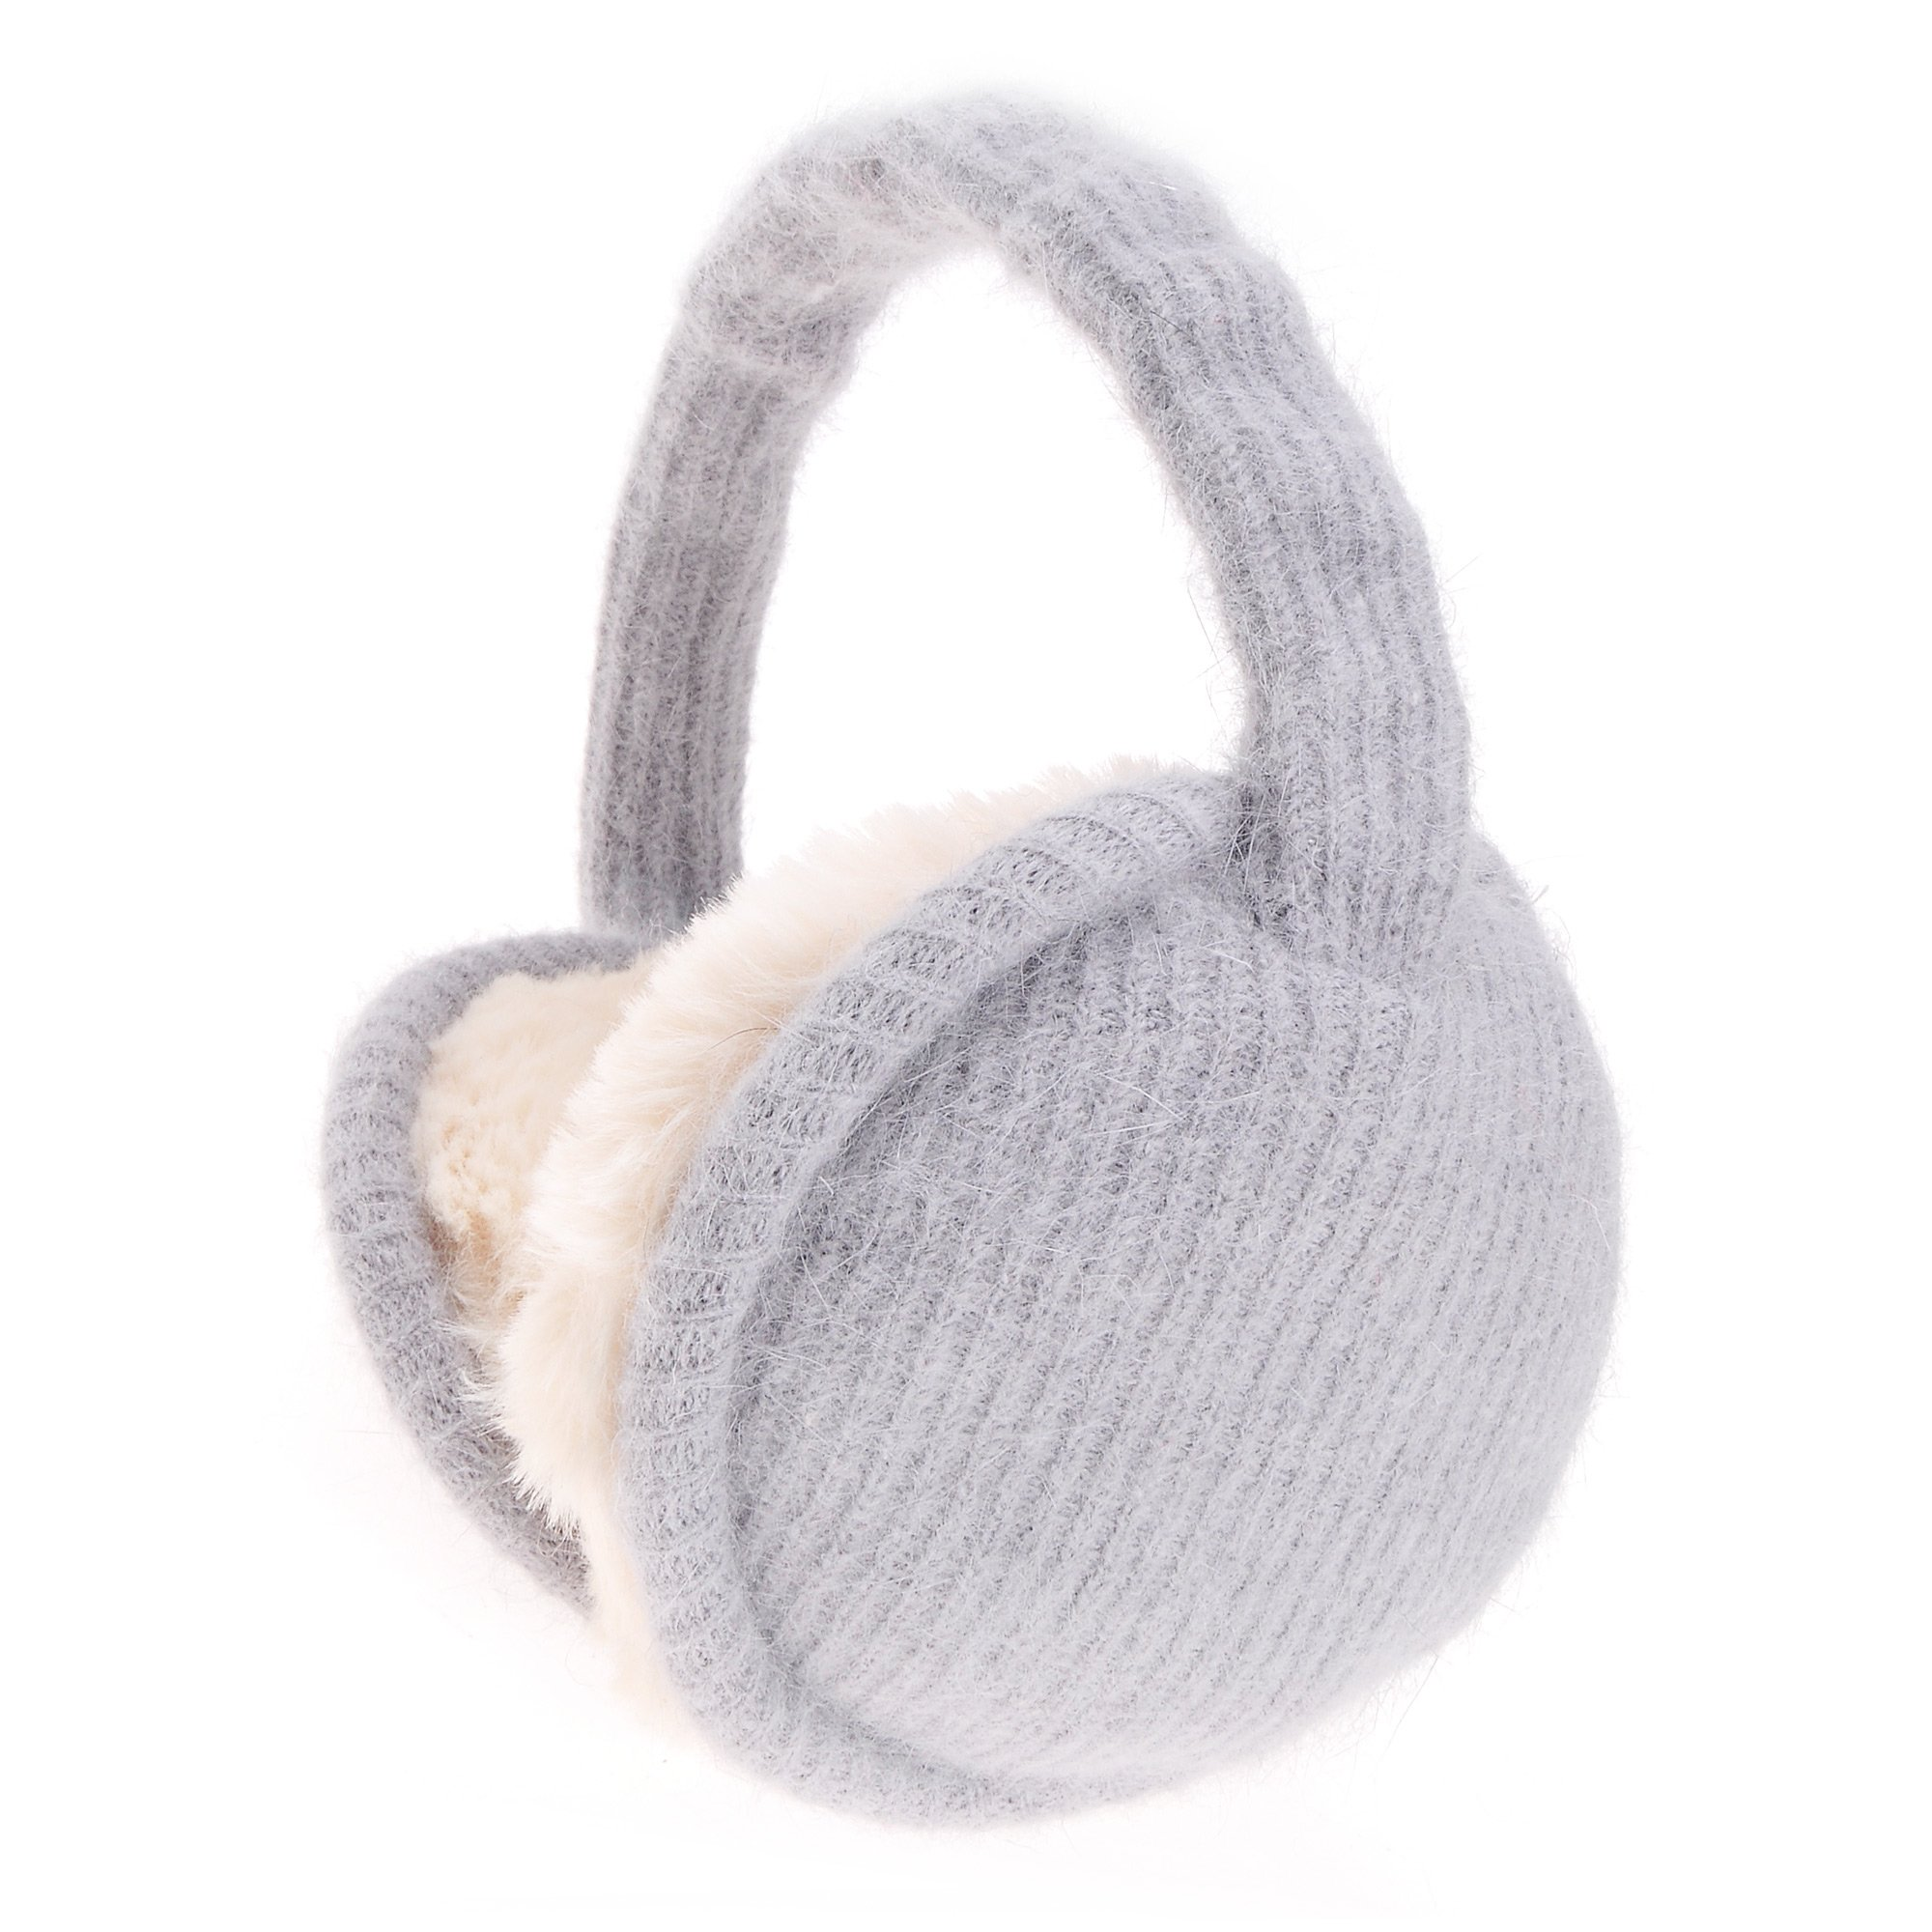 ZLYC Womens Girls Winter Warm Adjustble Knitted Ear Warmers Foldable Earmuffs, Gray Grey